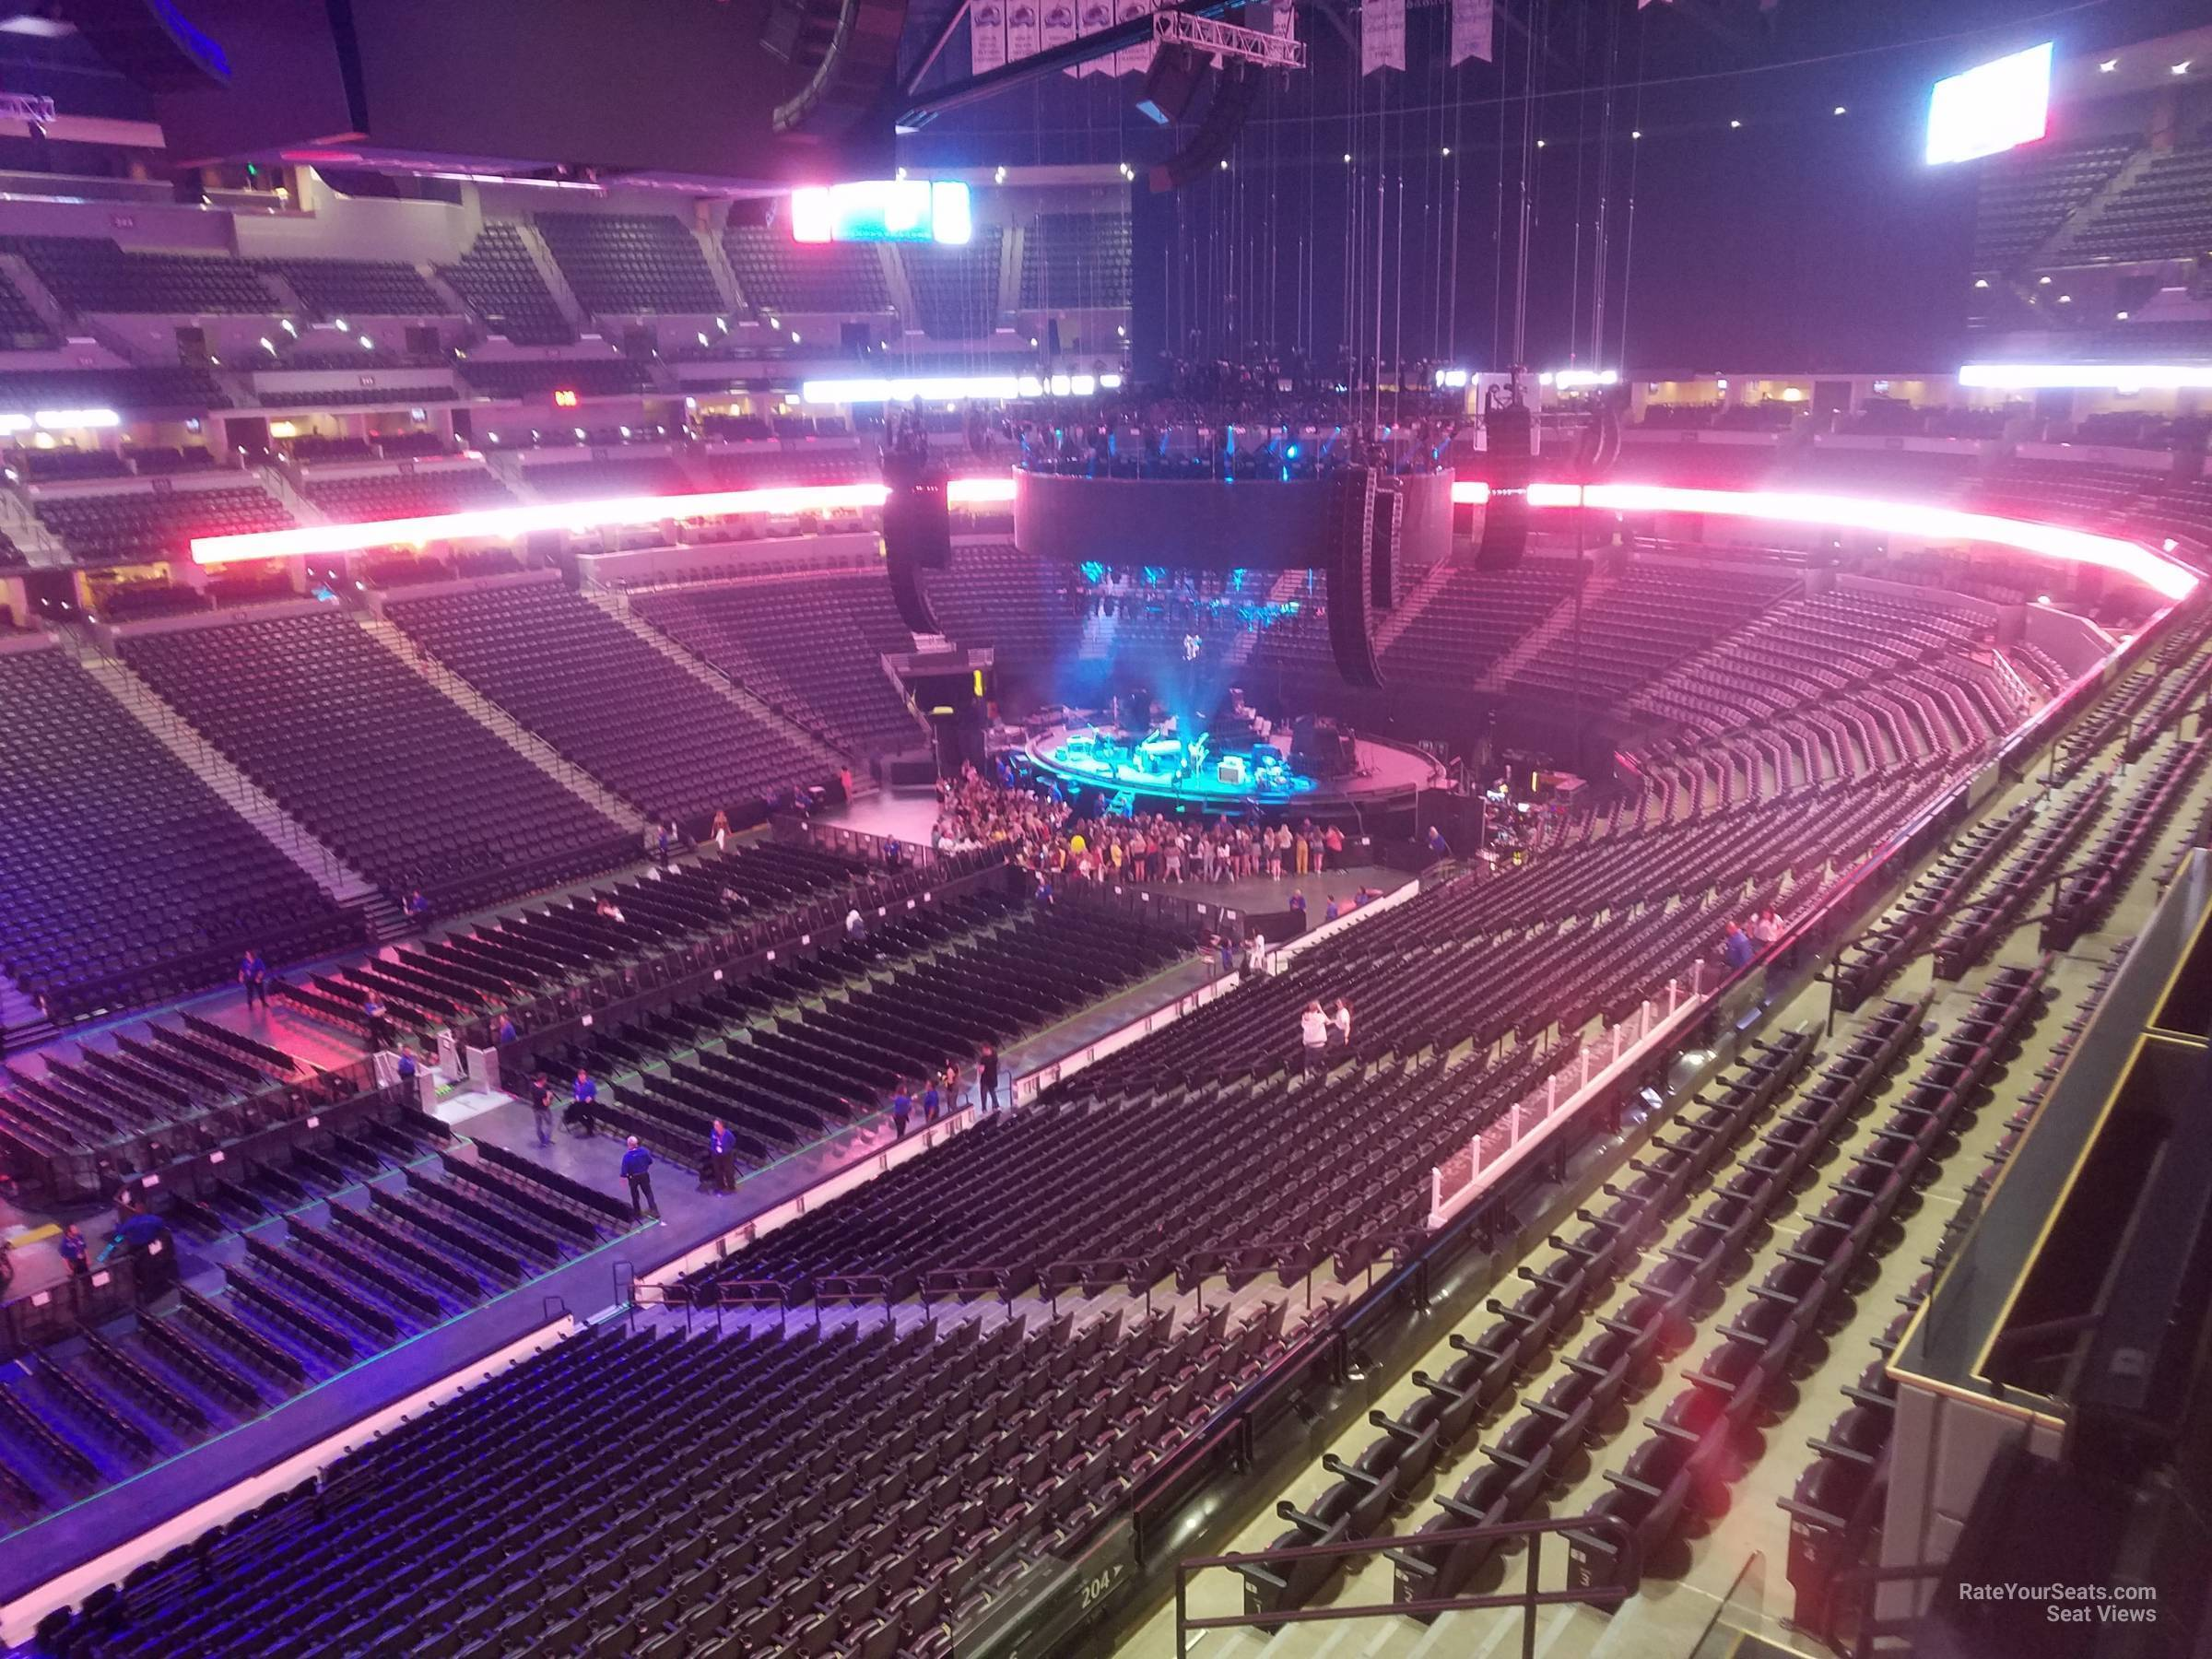 Pepsi Center: Pepsi Center Section 309 Concert Seating